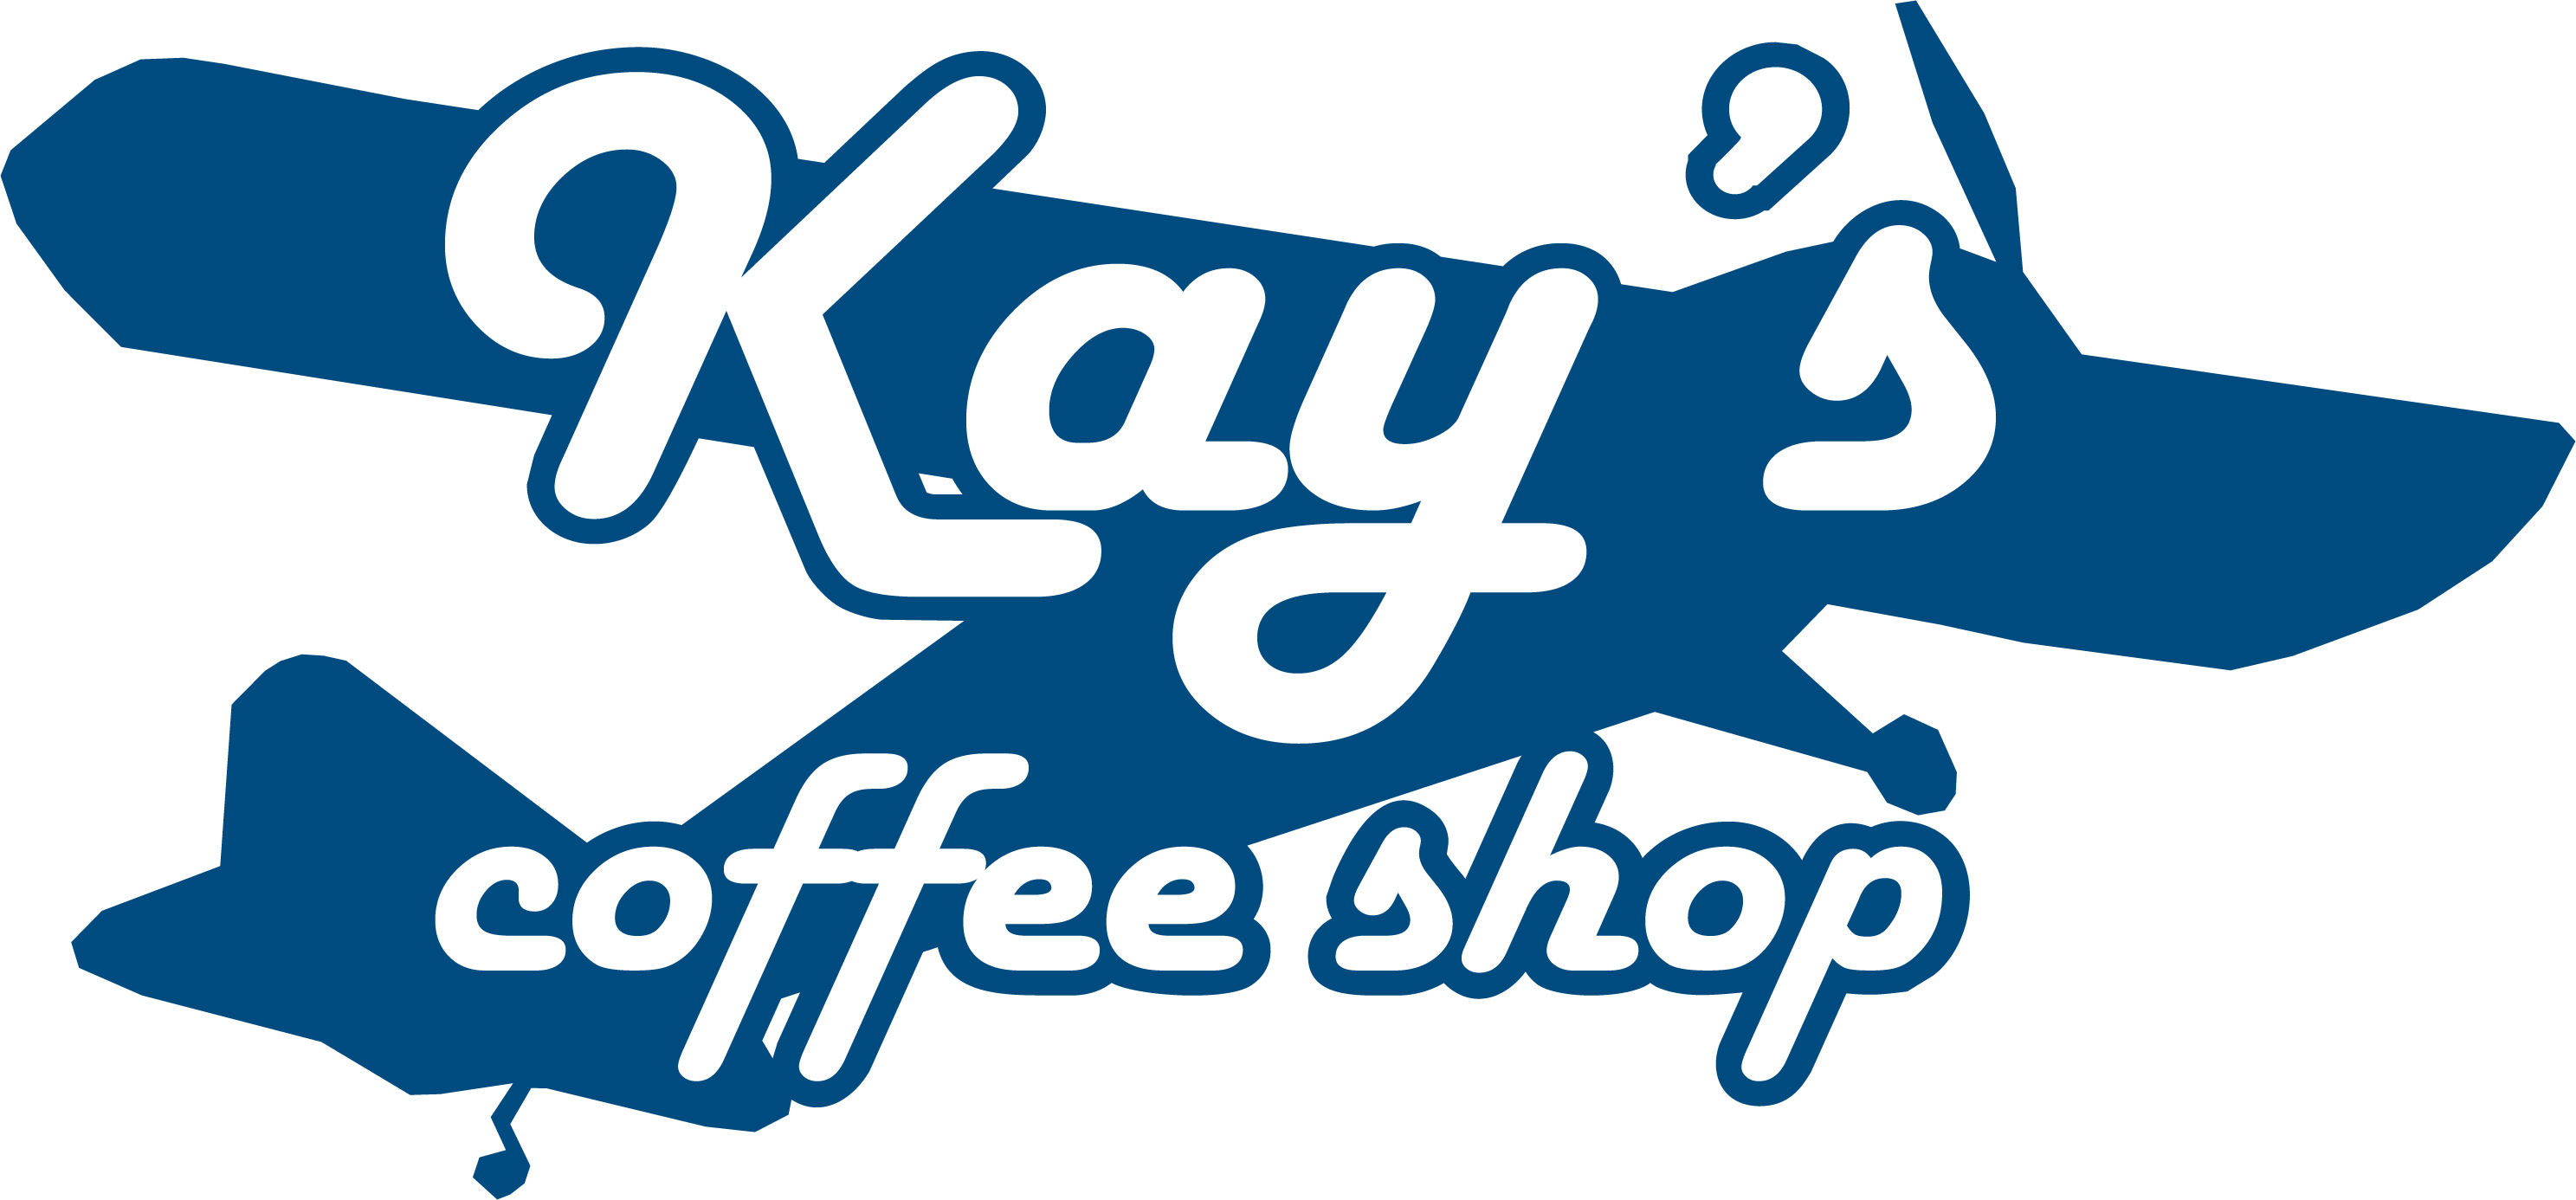 Kays Coffee Shop